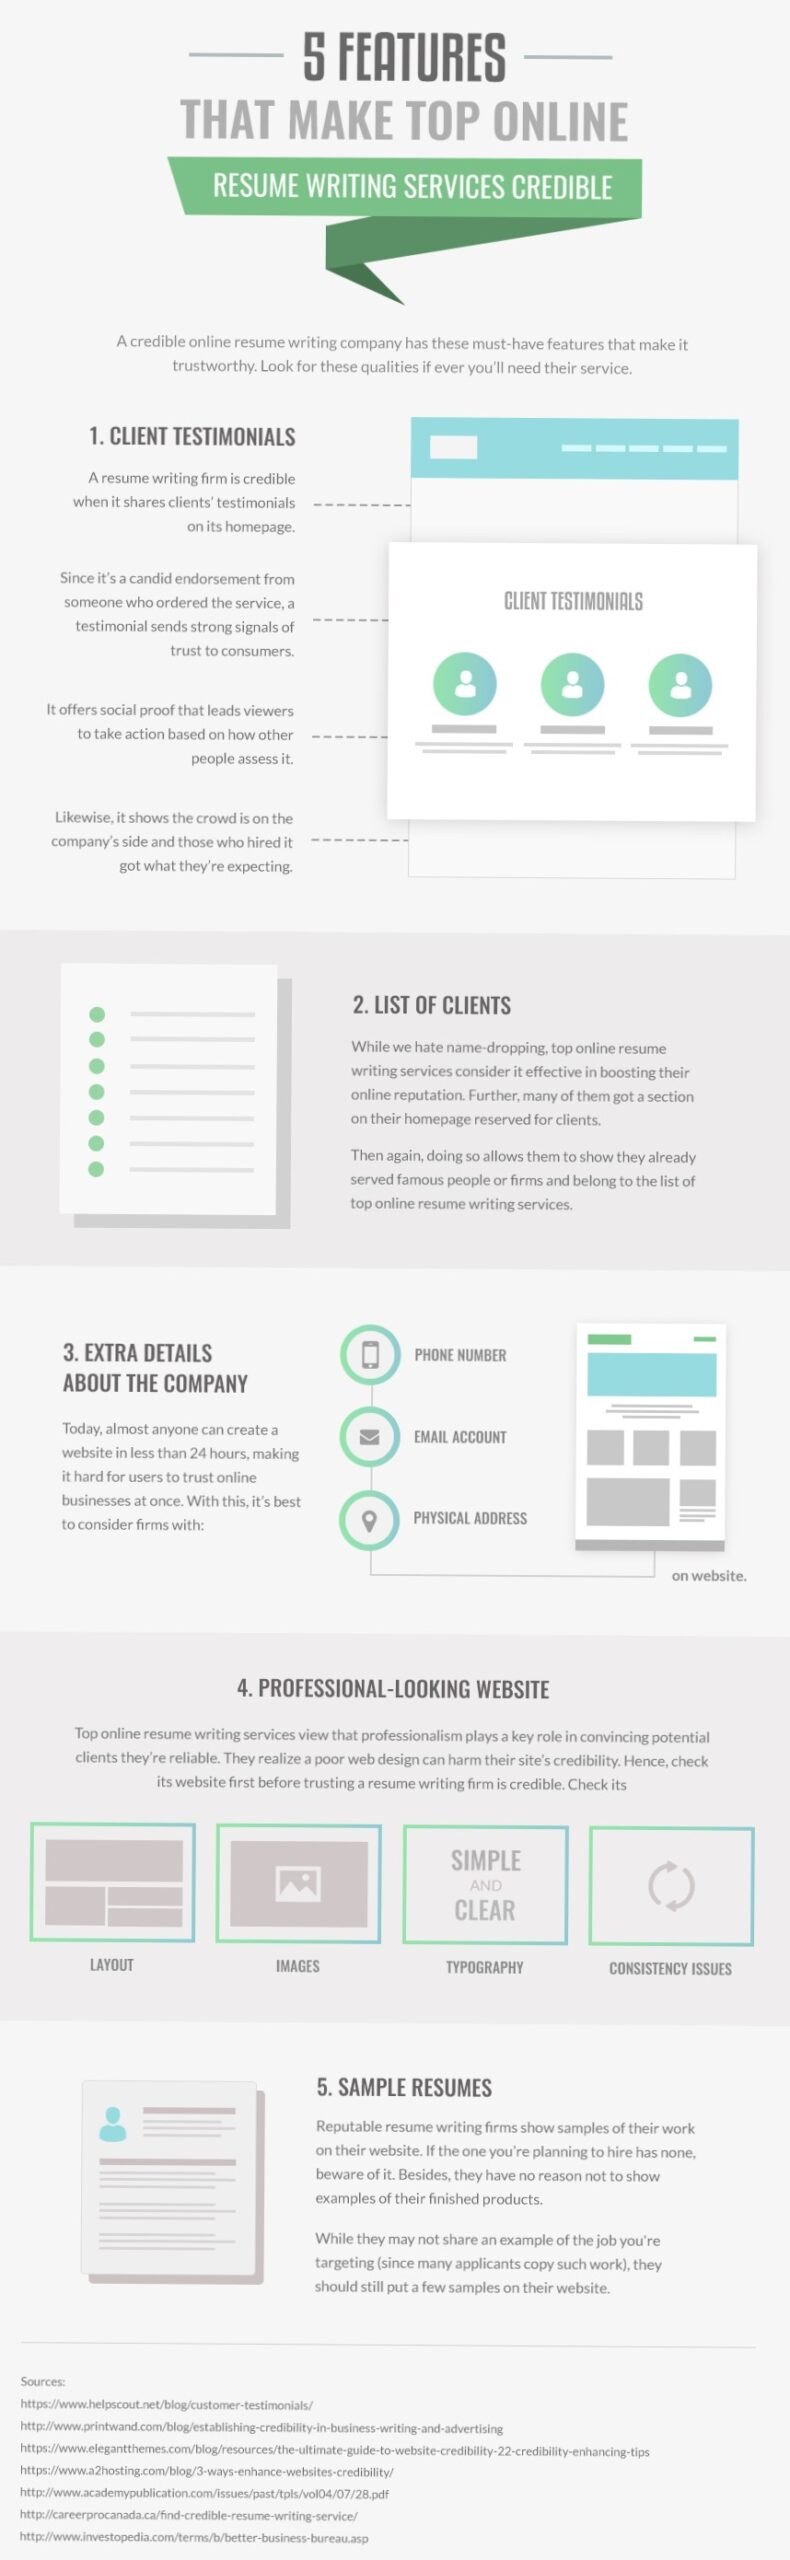 infographic showing five features that make top online resume writing services credible